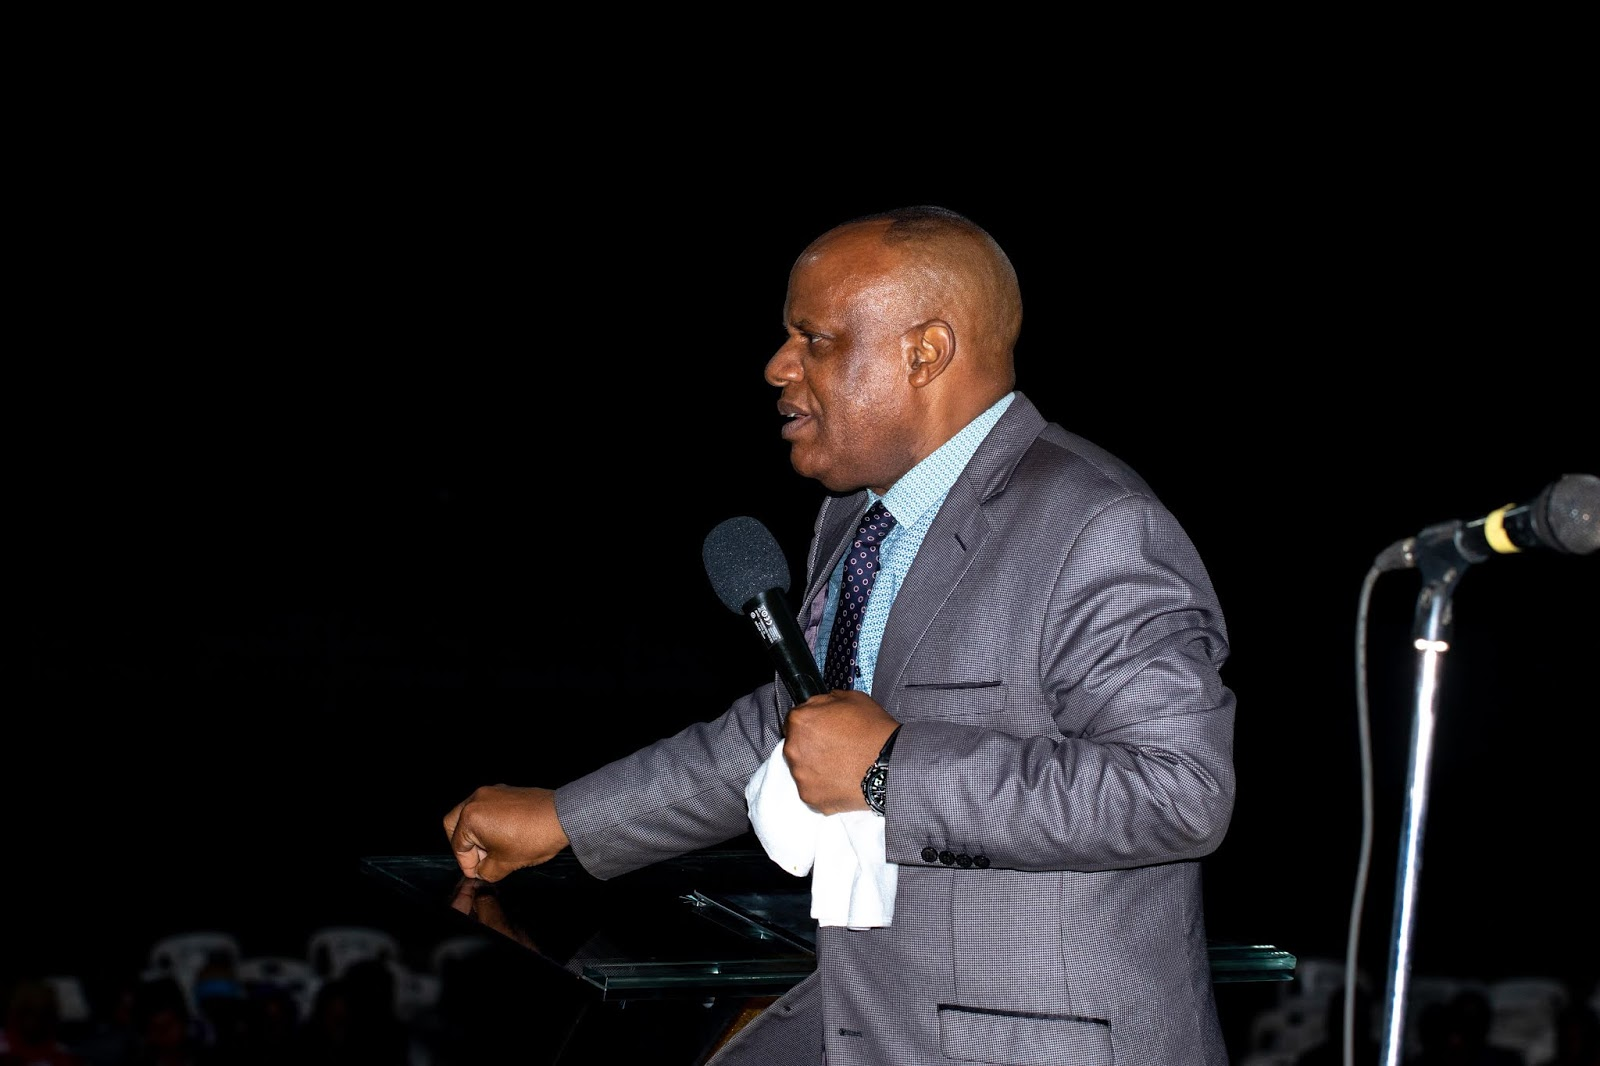 Apostle Alexander Chisango Preaching On Defeating The Impossible At Tiyambuke 2018 Day One